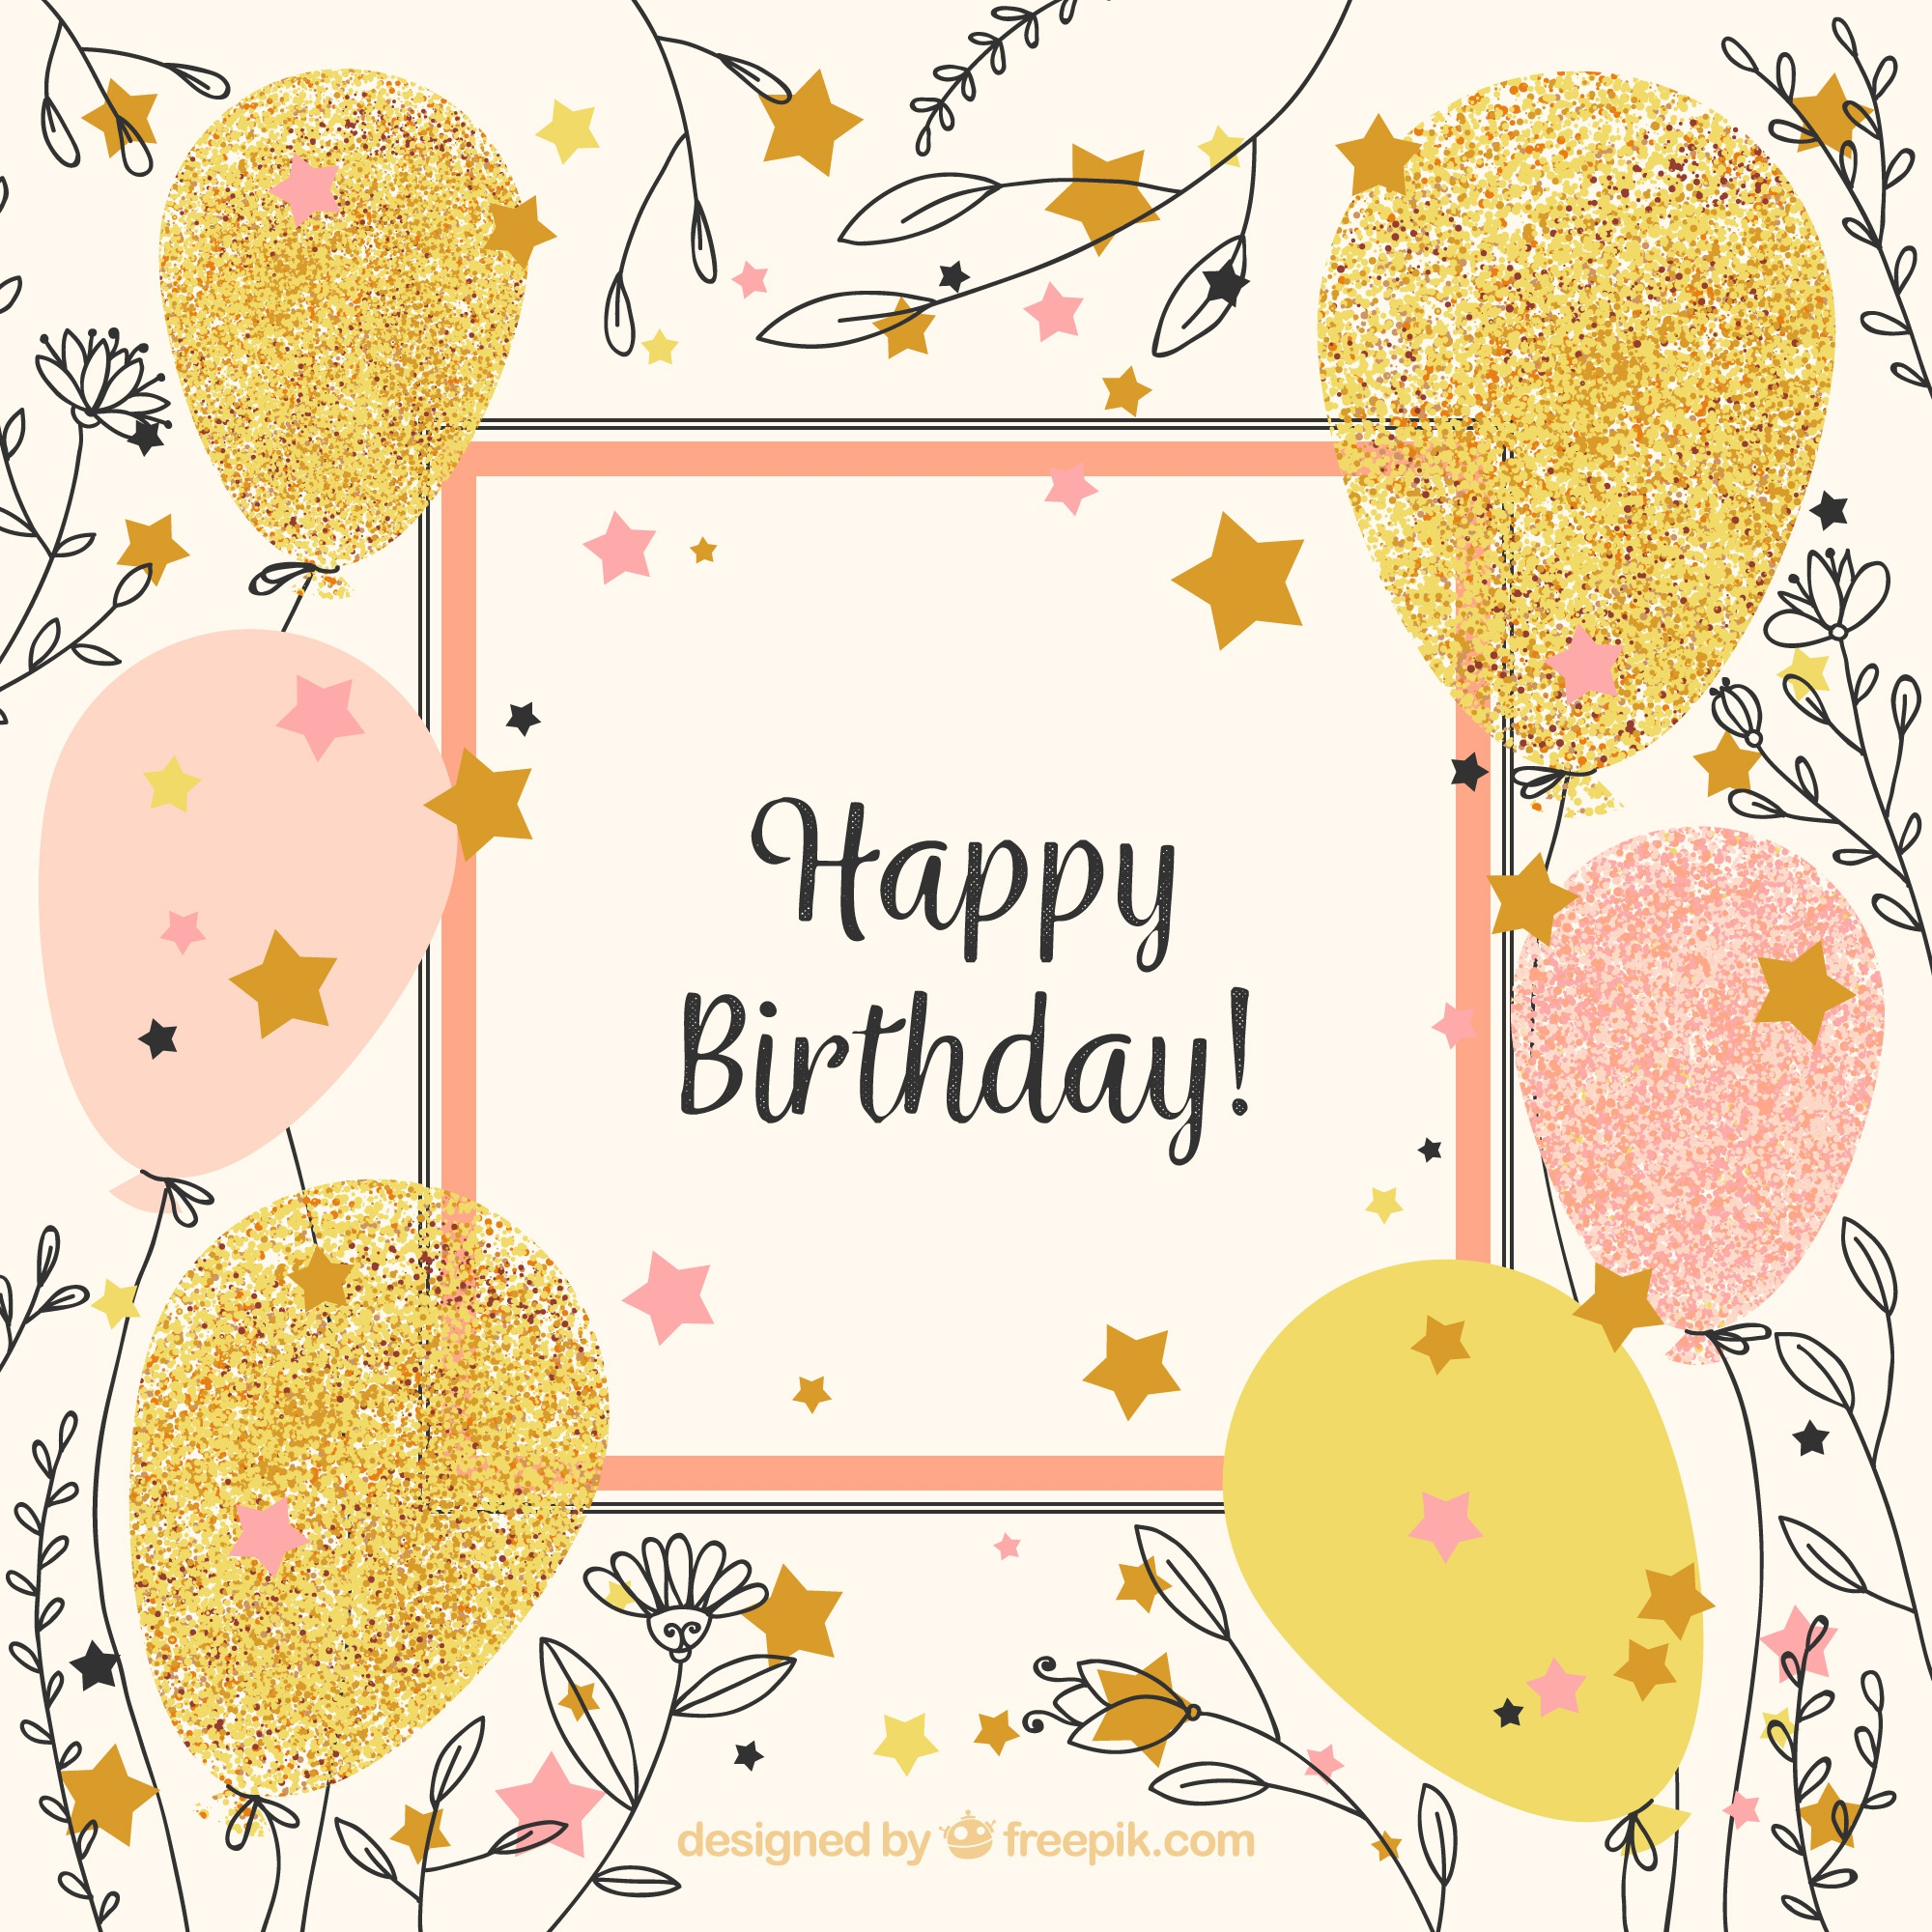 Vintage happy birthday background con palloncini e schizzi di fiore